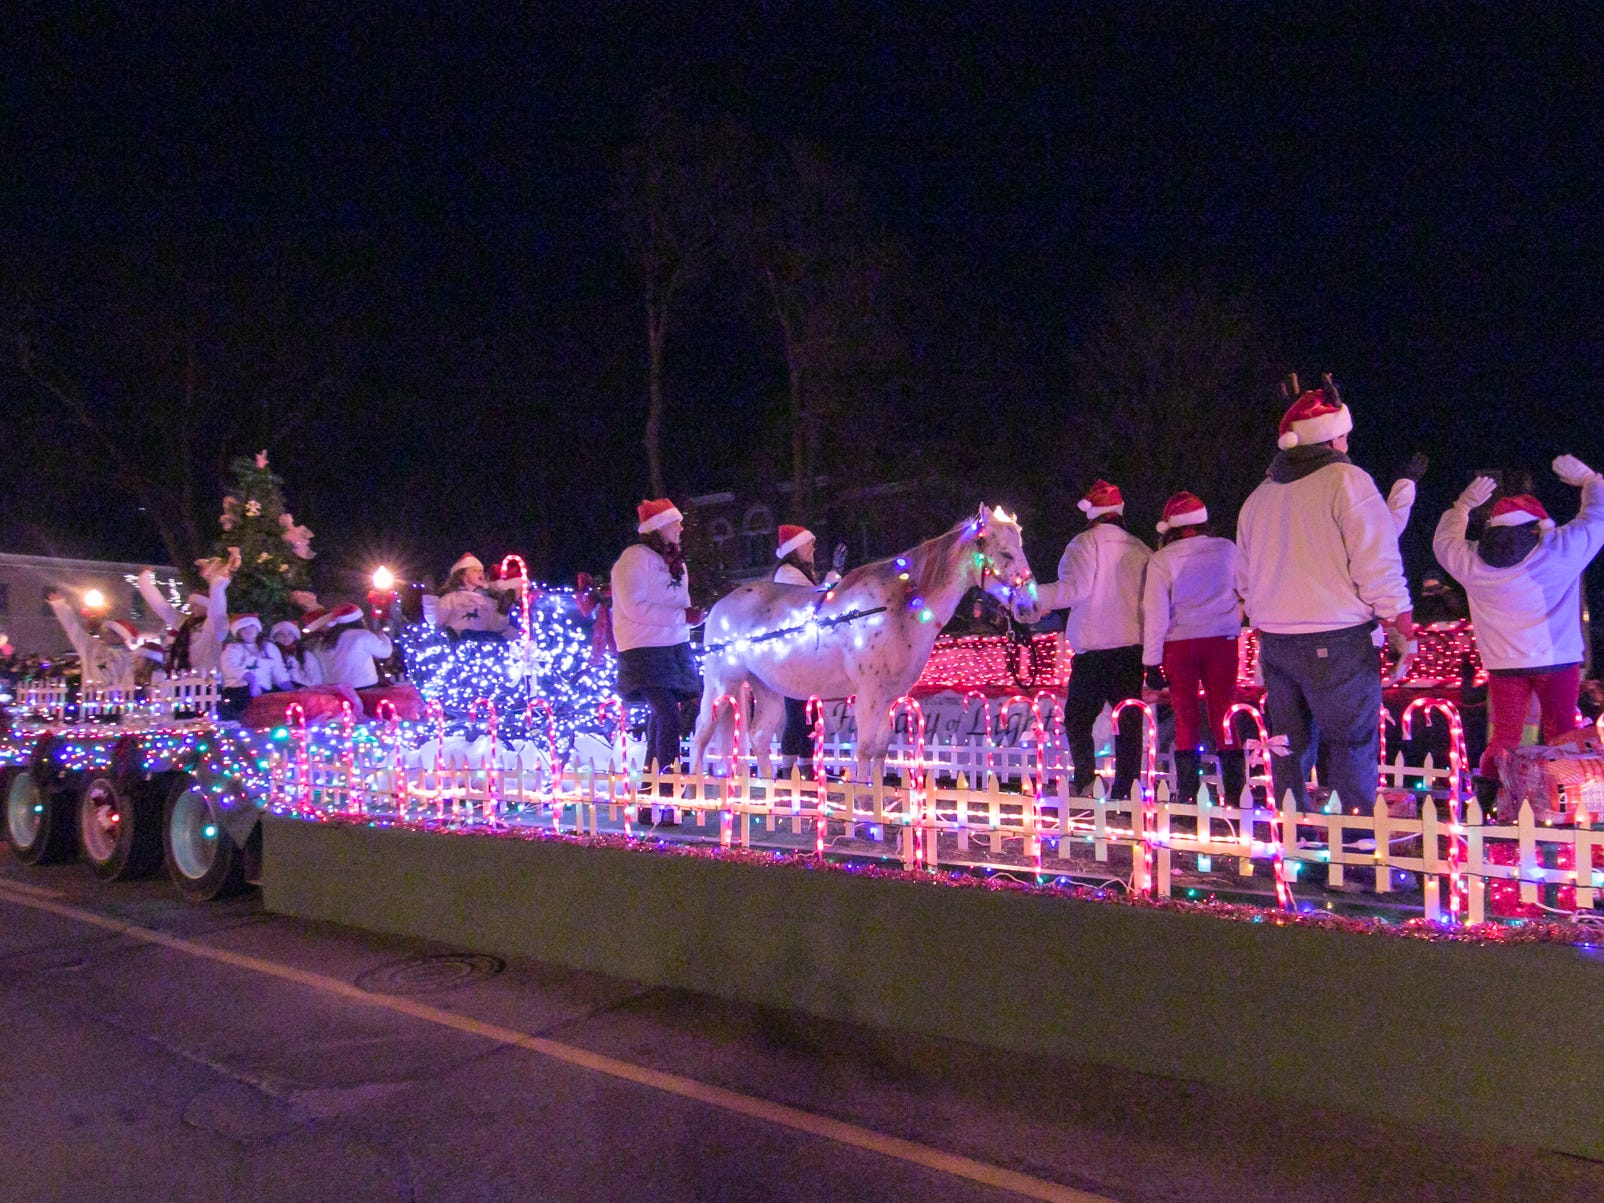 The Fantasy of Lights Grand Marshal award went to the entry by the Brighton Equestrian Club Friday, Nov. 23, 2018.